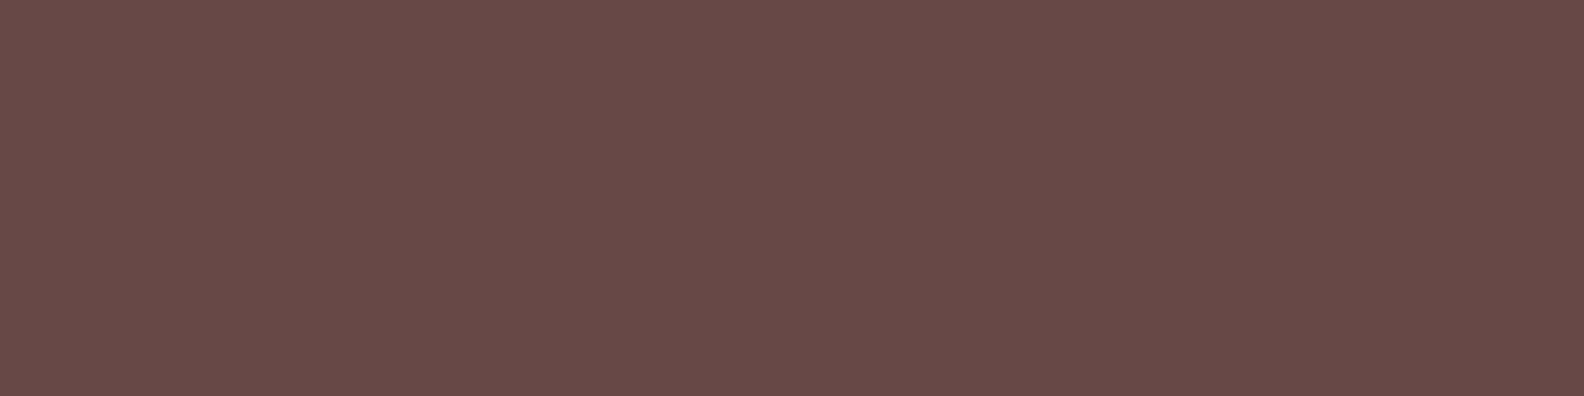 1584x396 Rose Ebony Solid Color Background